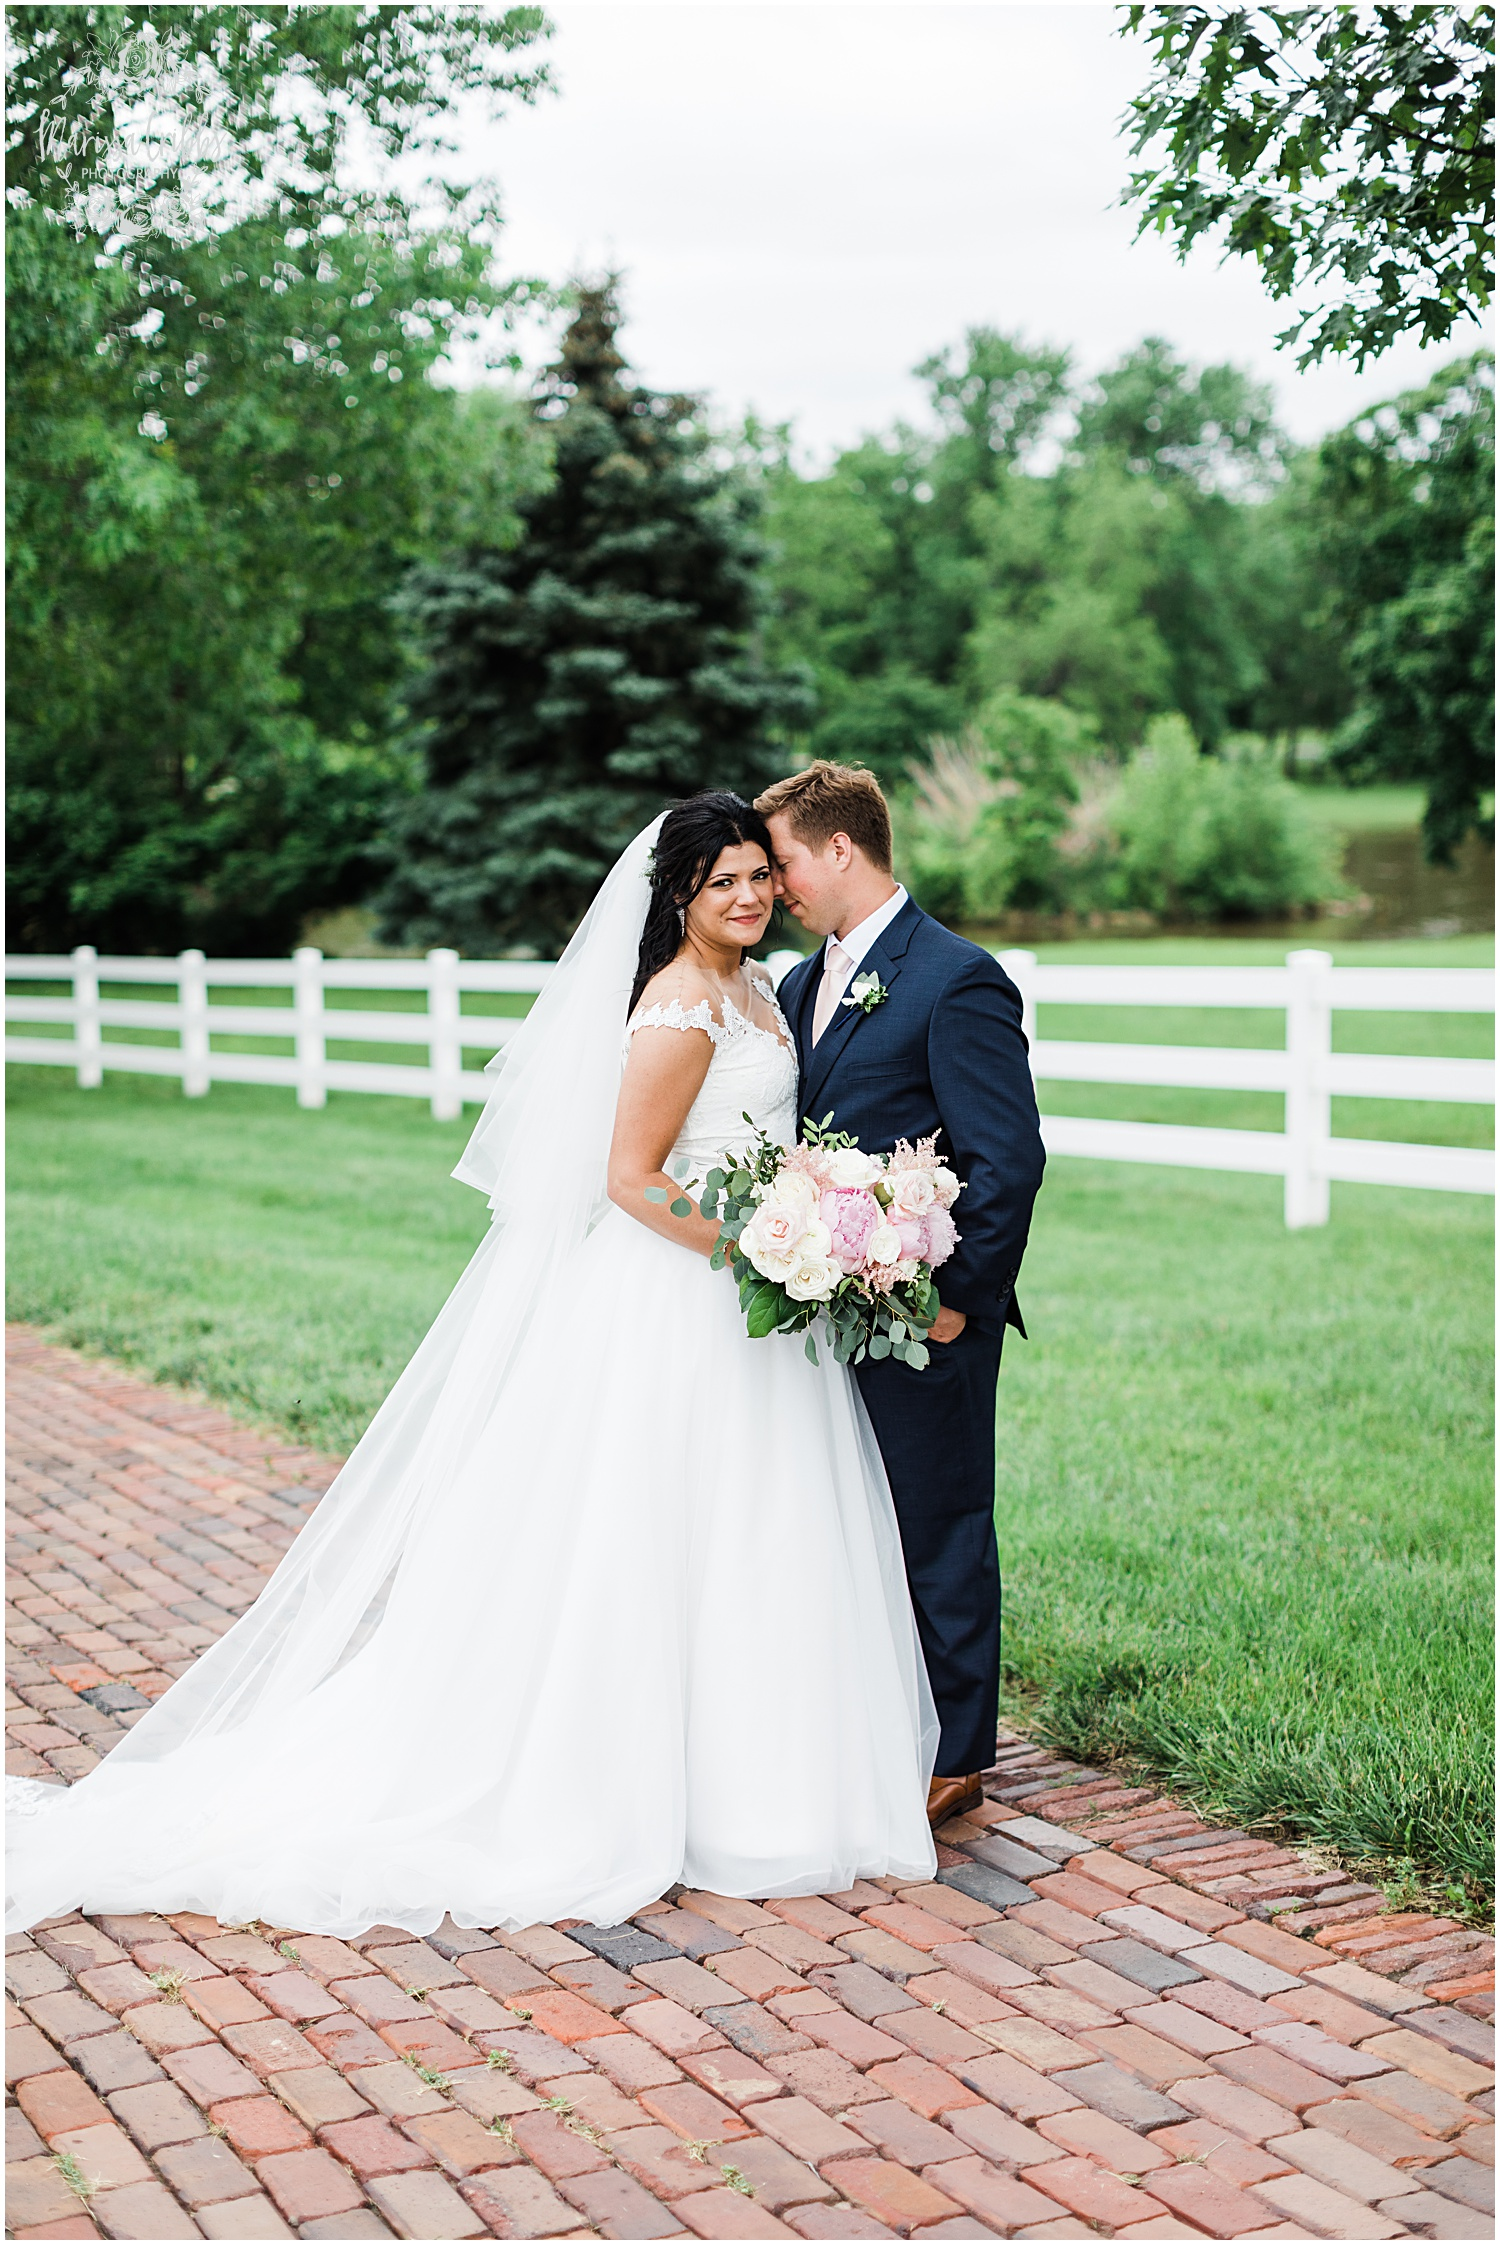 CASEY & GOLDIE MARRIED BLOG | MARISSA CRIBBS PHOTOGRAPHY_8031.jpg